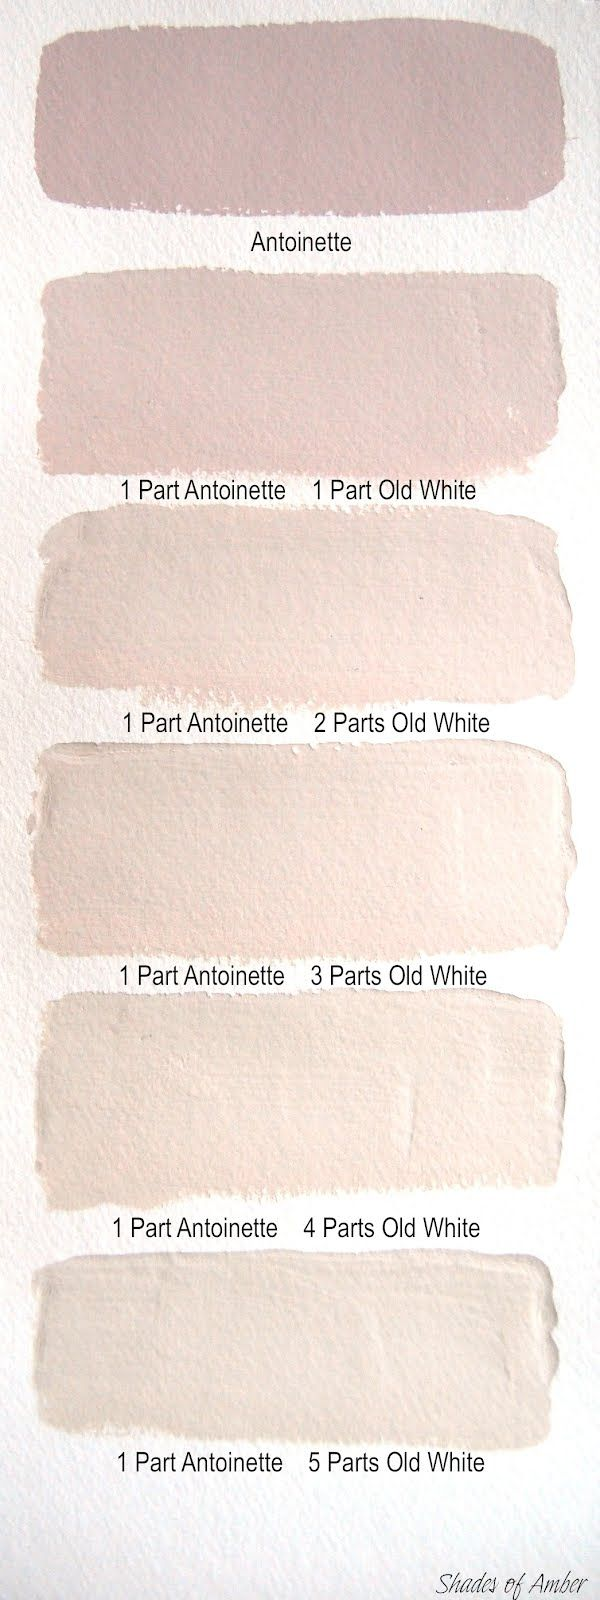 colour palette / Shades of Amber: Chalk Paint Color Theory - Antoinette